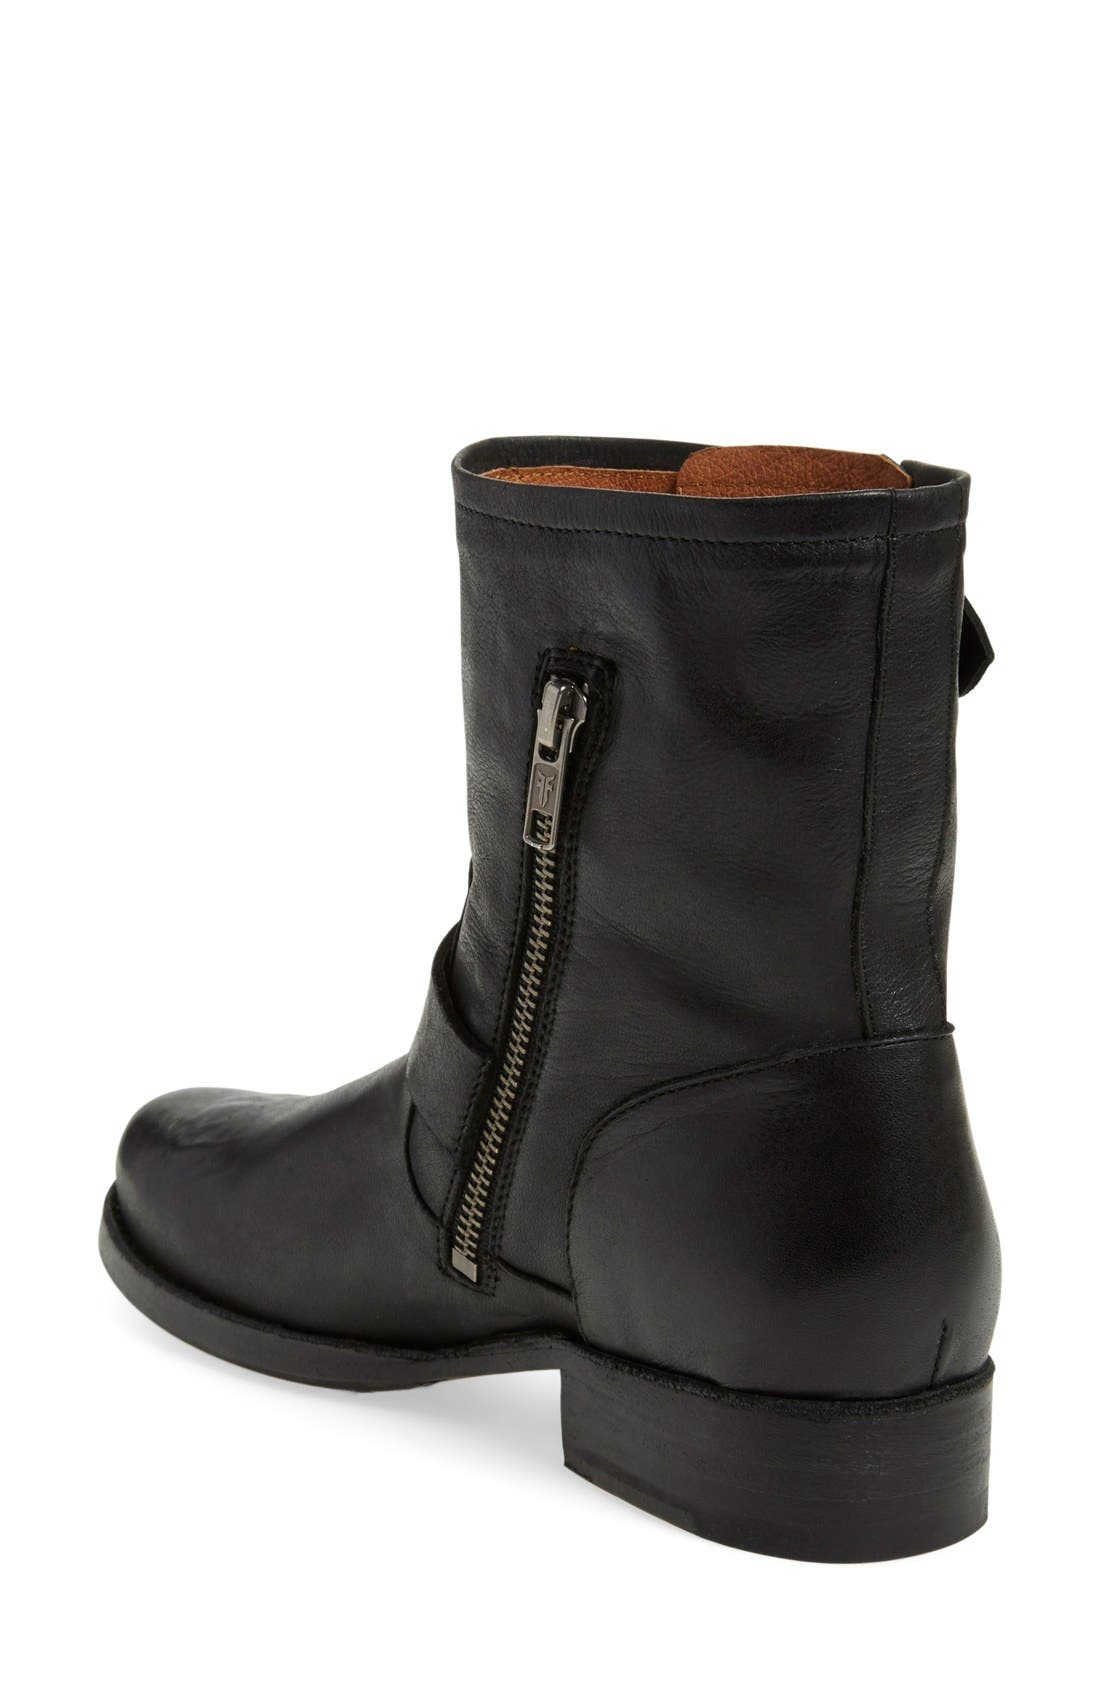 'Vicky Engineer' Boot,                             Alternate thumbnail 2, color,                             001